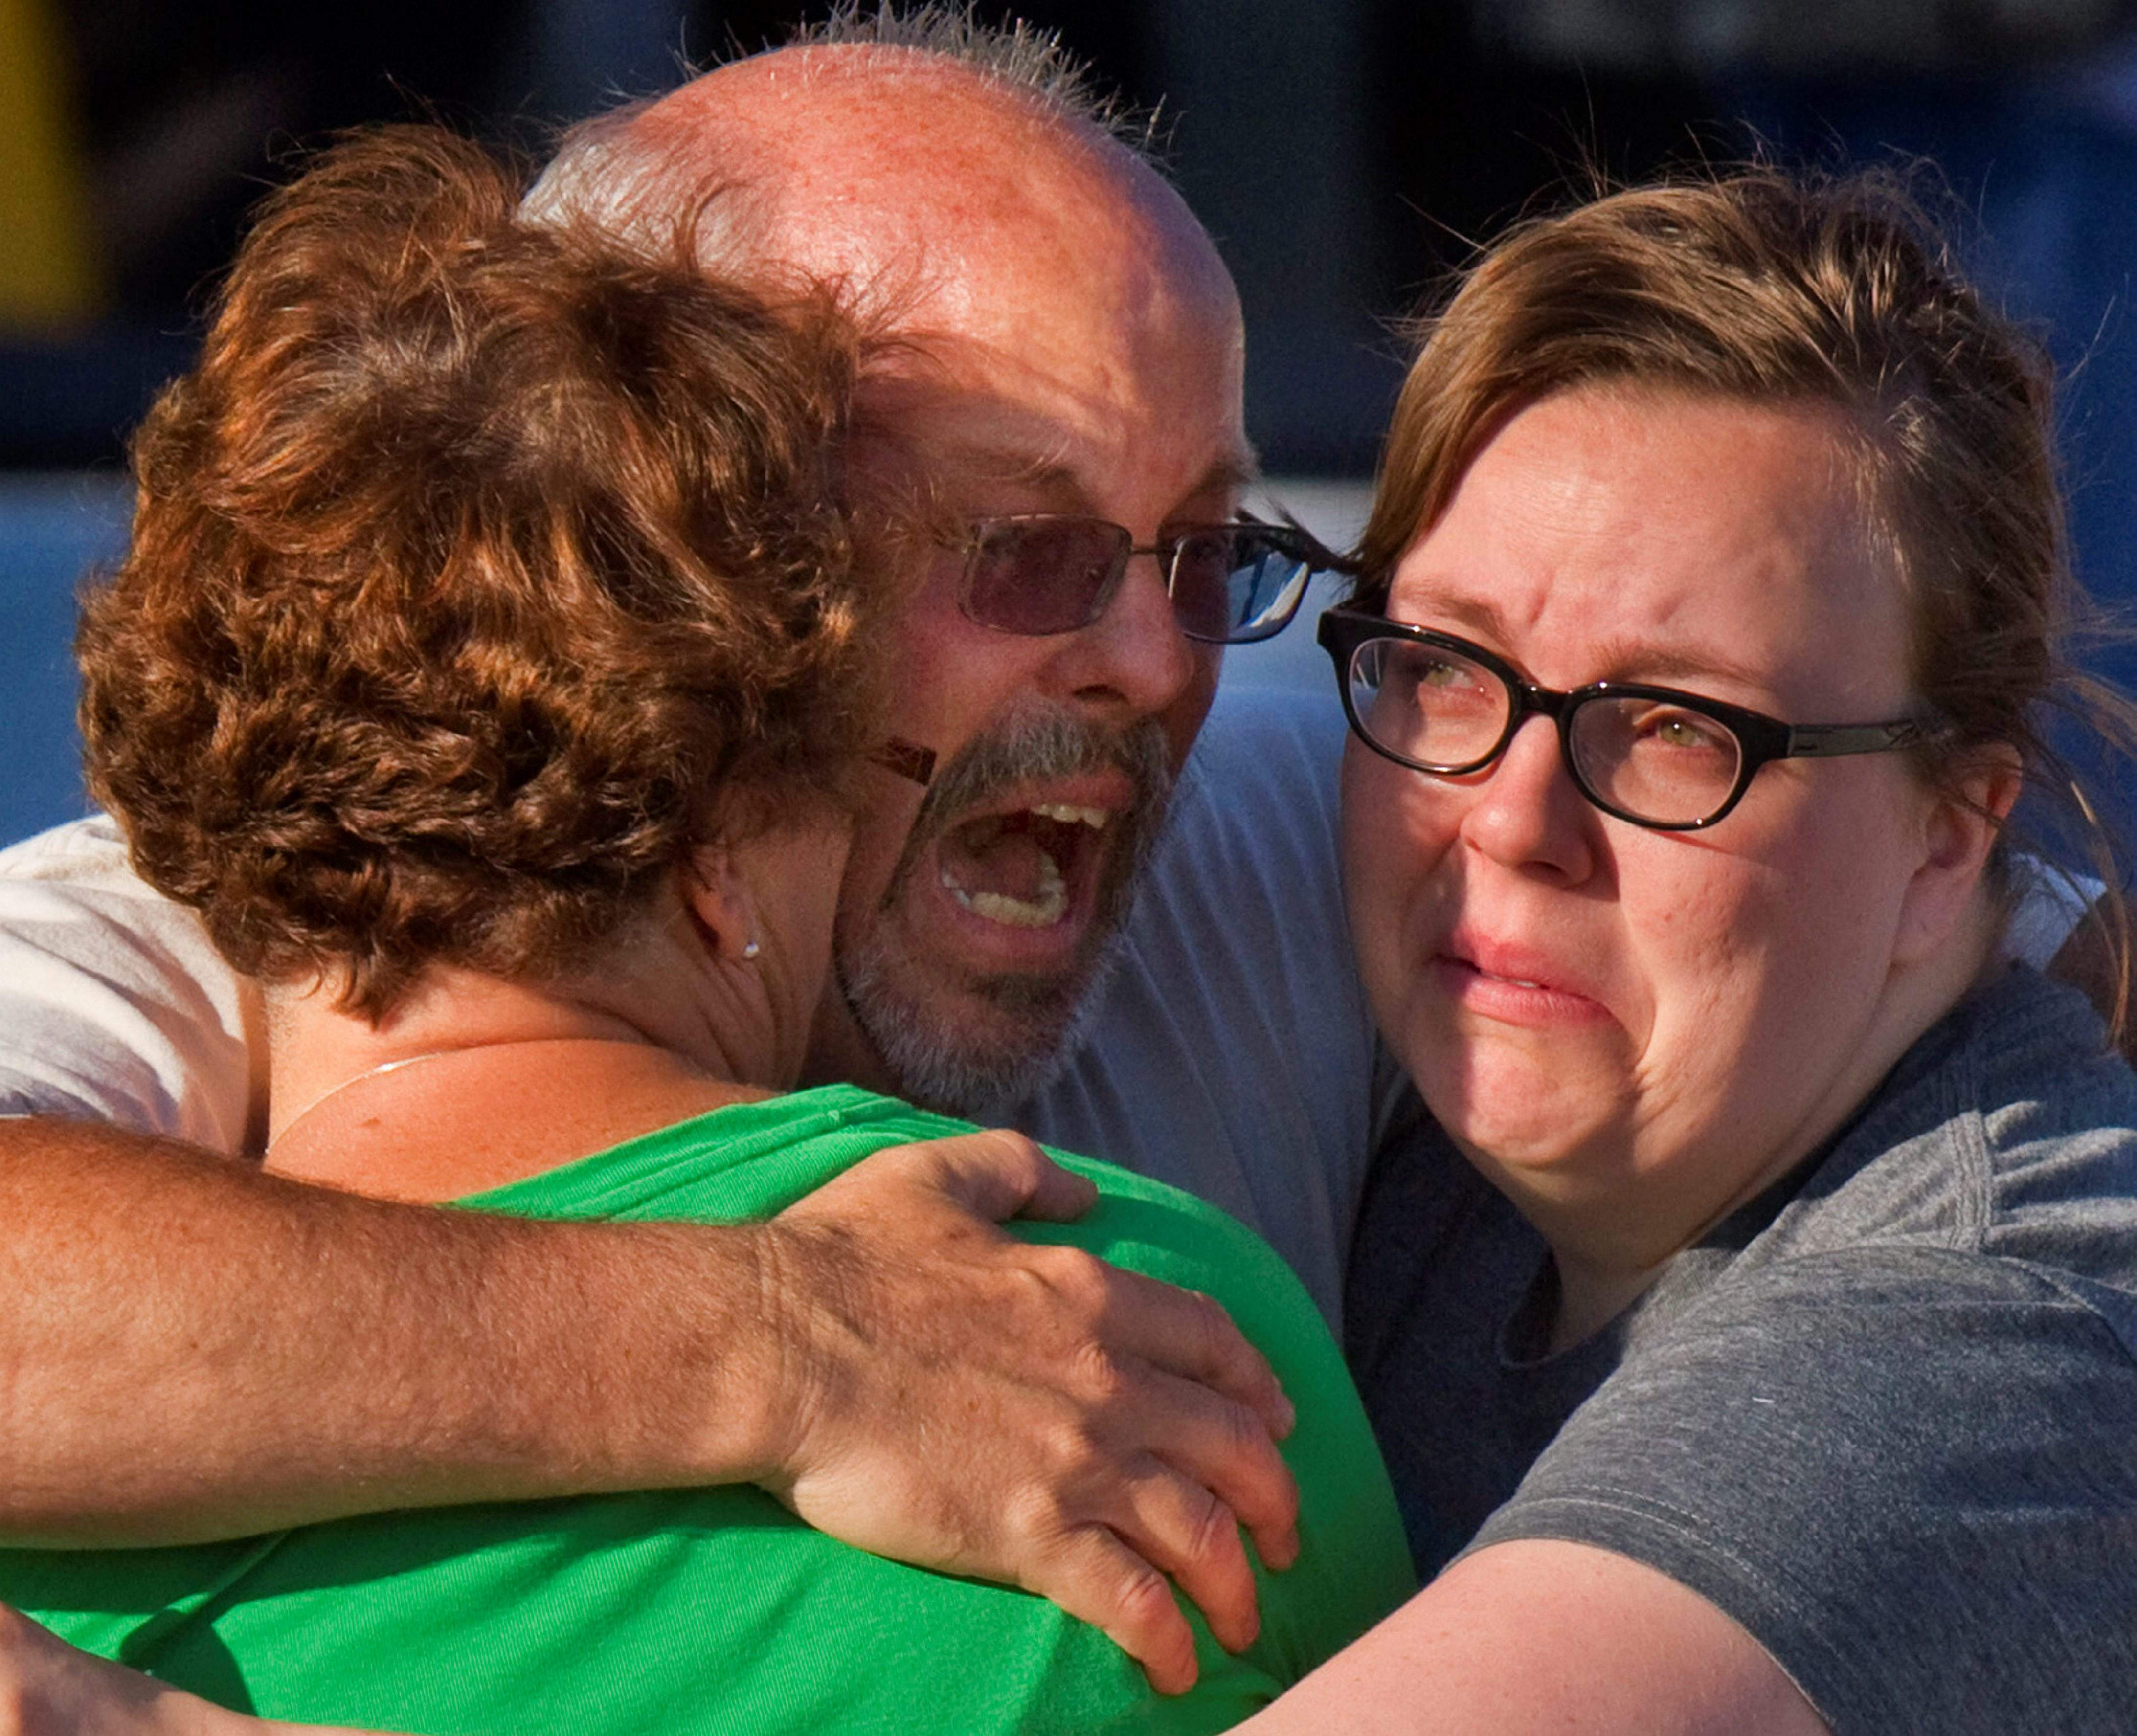 competing solutions to preventing mass shootings seen at colorado